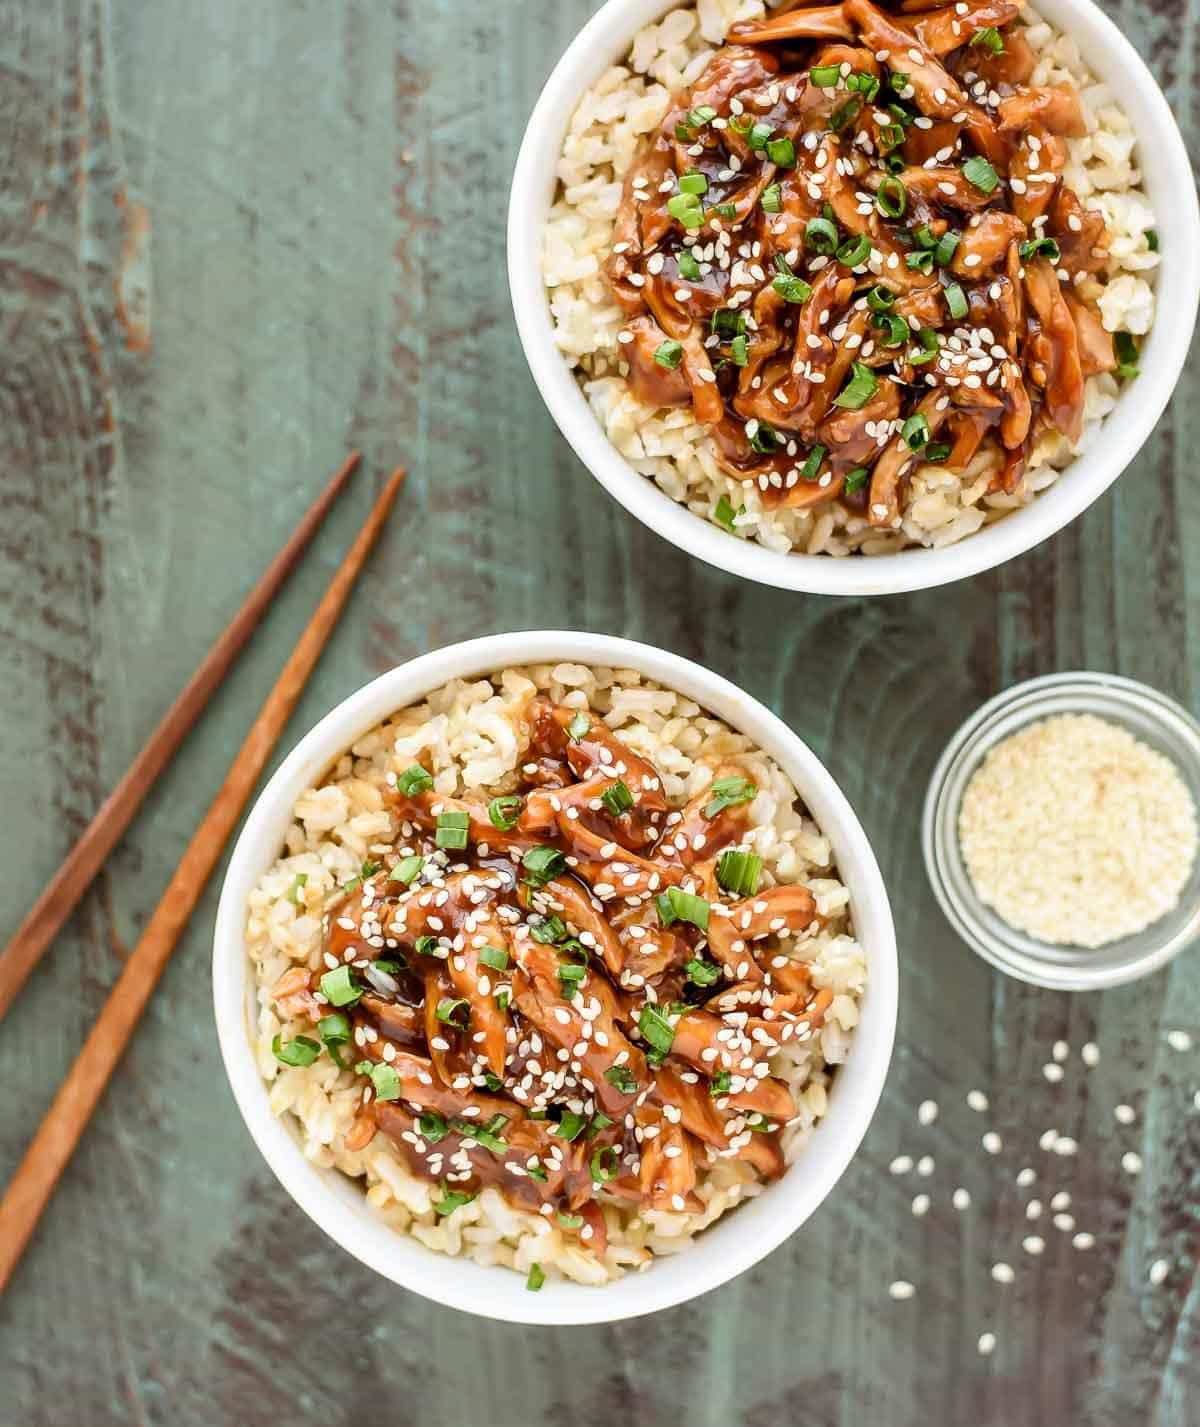 This crock pot teriyaki chicken will be the BEST thing you make! The honey teriyaki sauce is incredible. Perfect for serving with rice and great leftover too. @wellplated